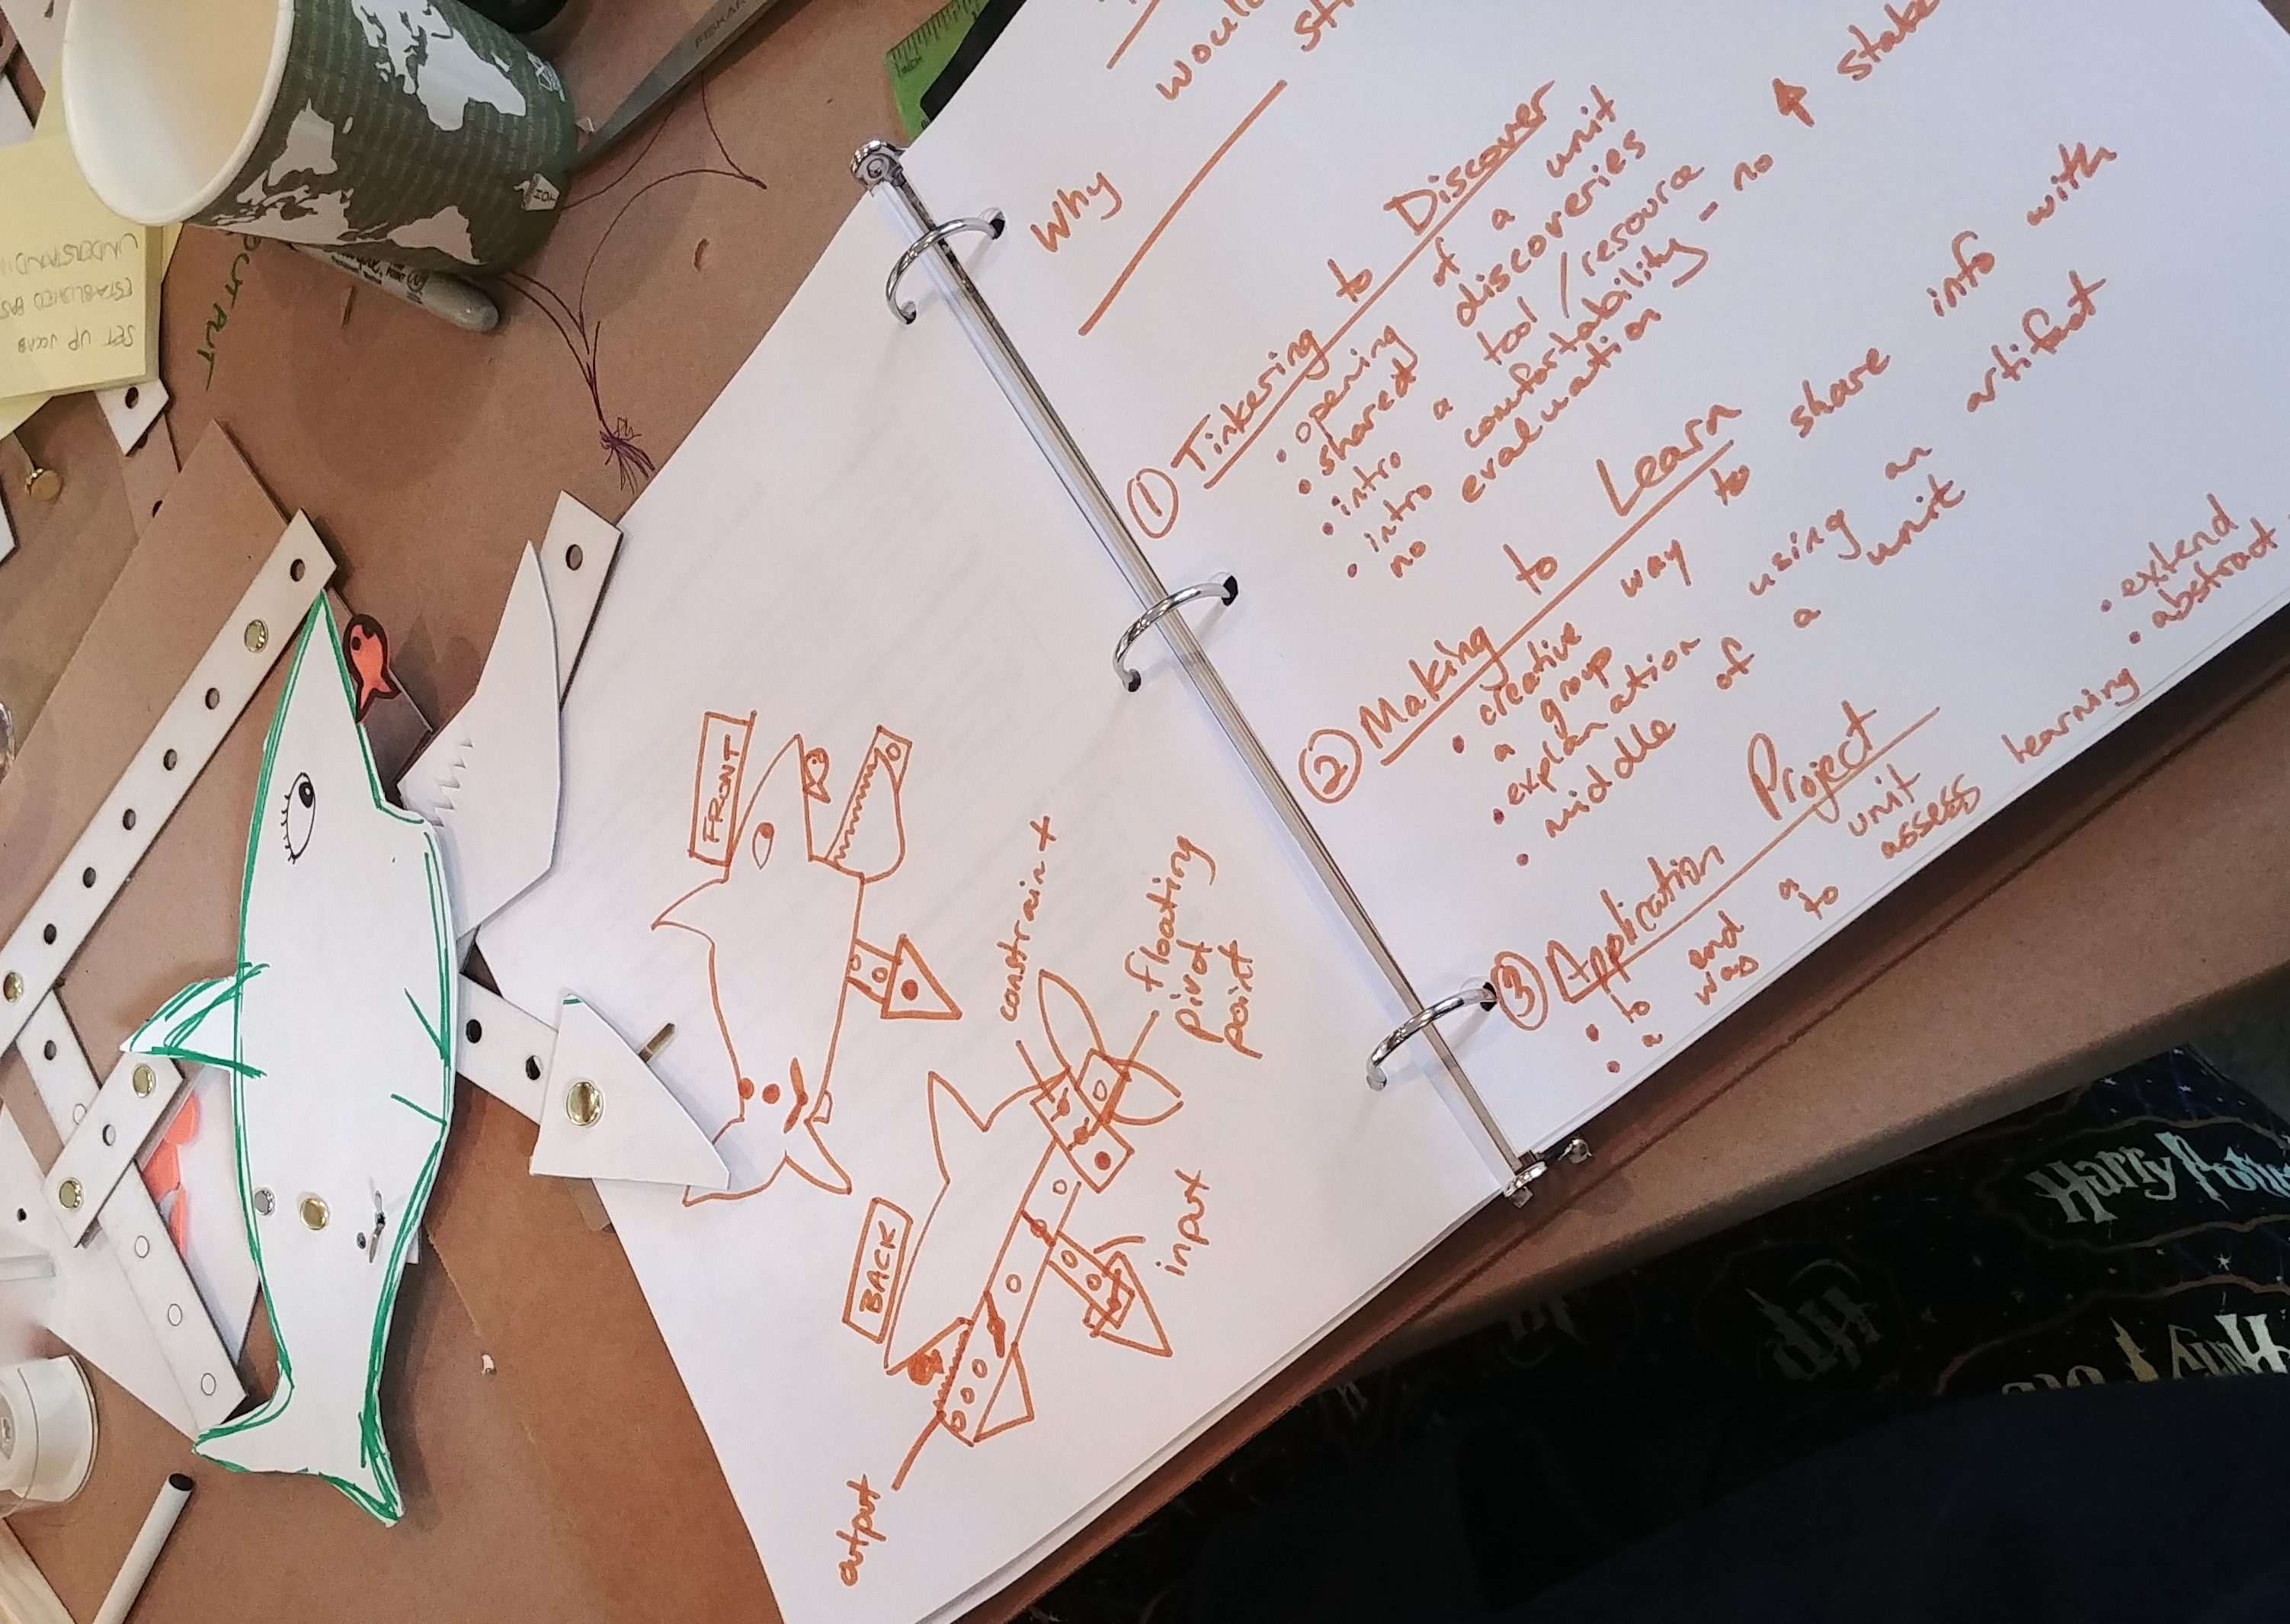 A photograph of a workshop participant's notebook shows their observations about their cardboard linkage activity, including a hand-drawn diagram of a shark.